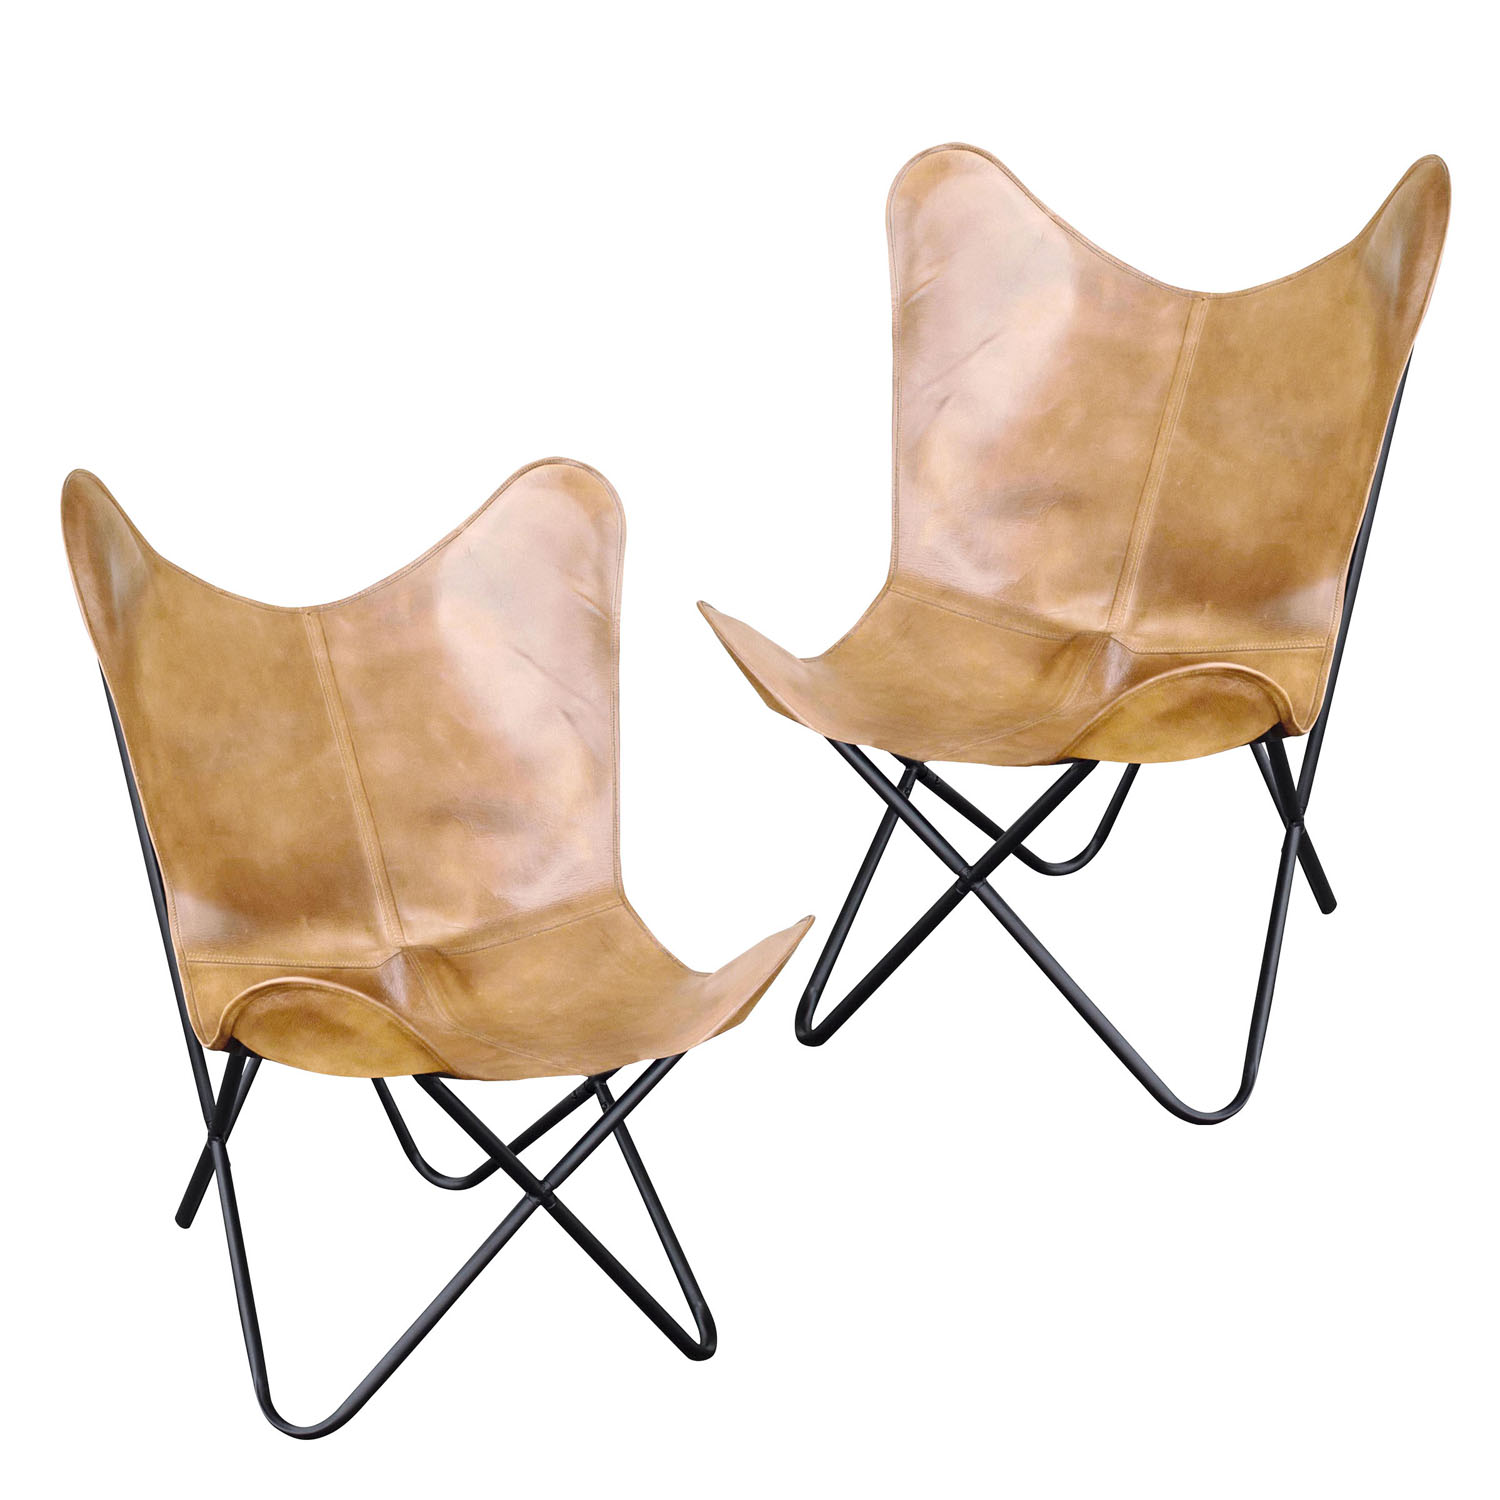 Natural Leather Butterfly Chair in Light Tan, 2 Piece Set